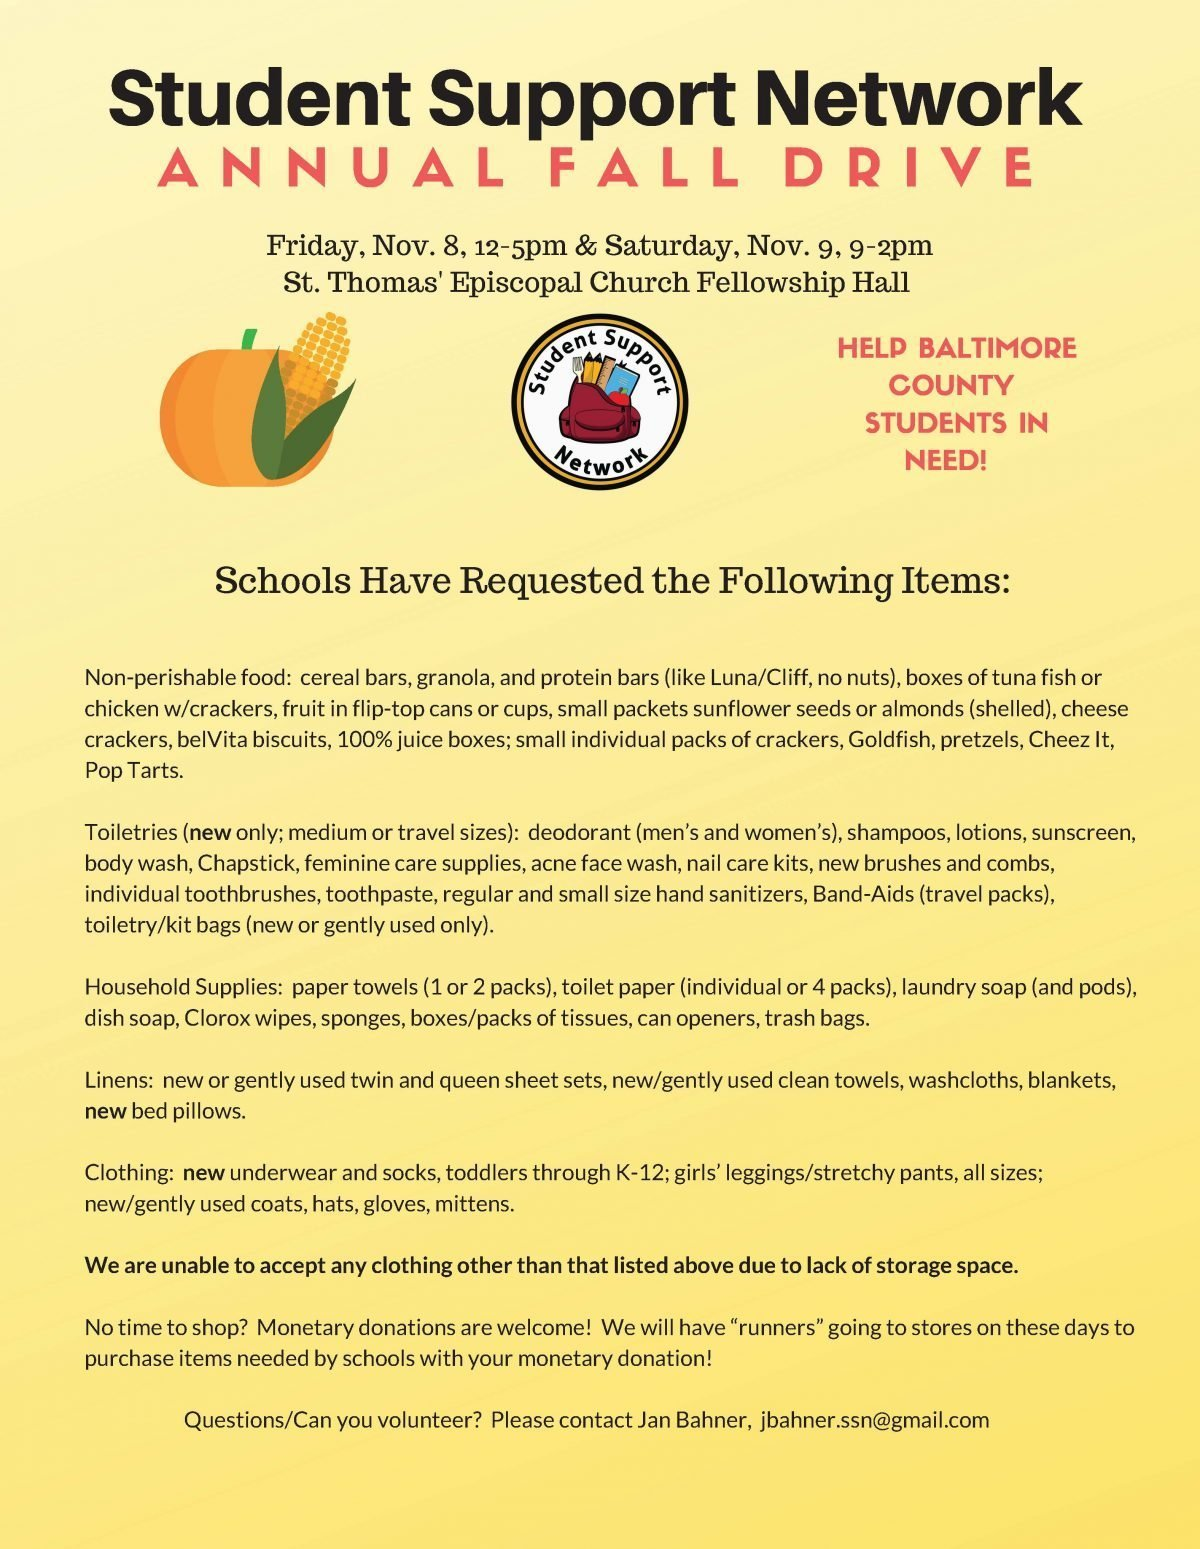 Student Support Network Annual Fall Drive 2019